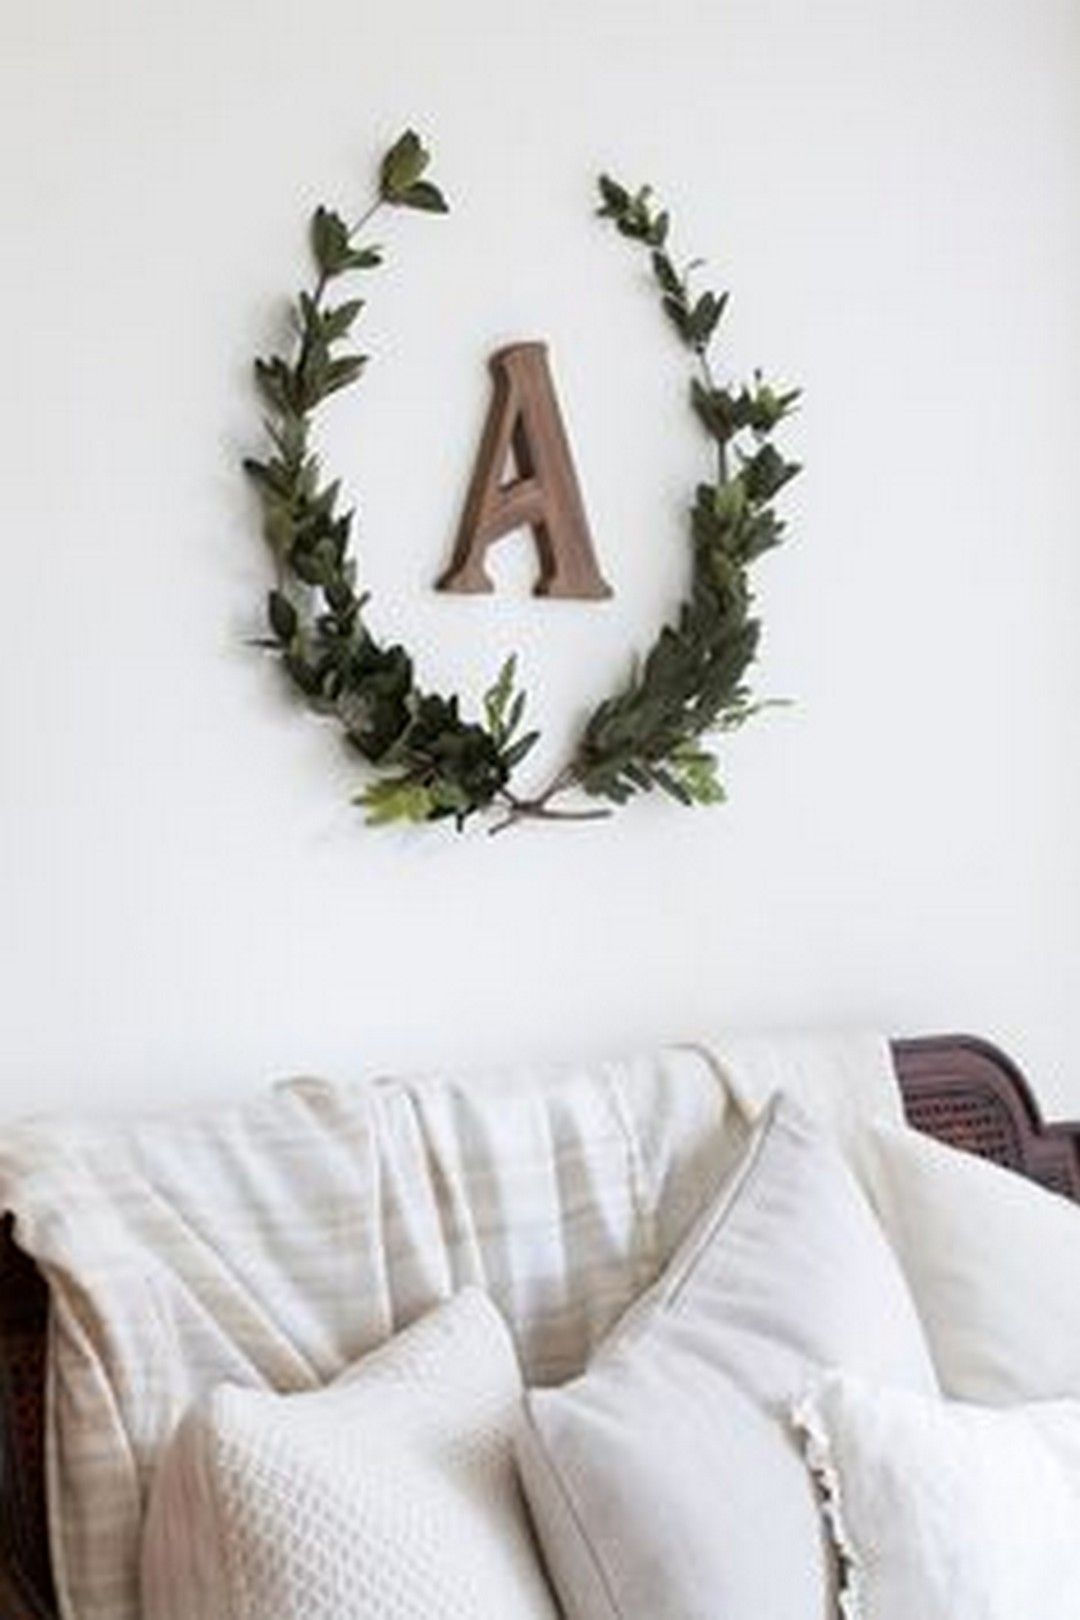 10 Simple Things To Decorate Room With These Diy Wall Decor Ideas Goodnewsarchitecture Decor Diy Farmhouse Decor Easy Home Decor